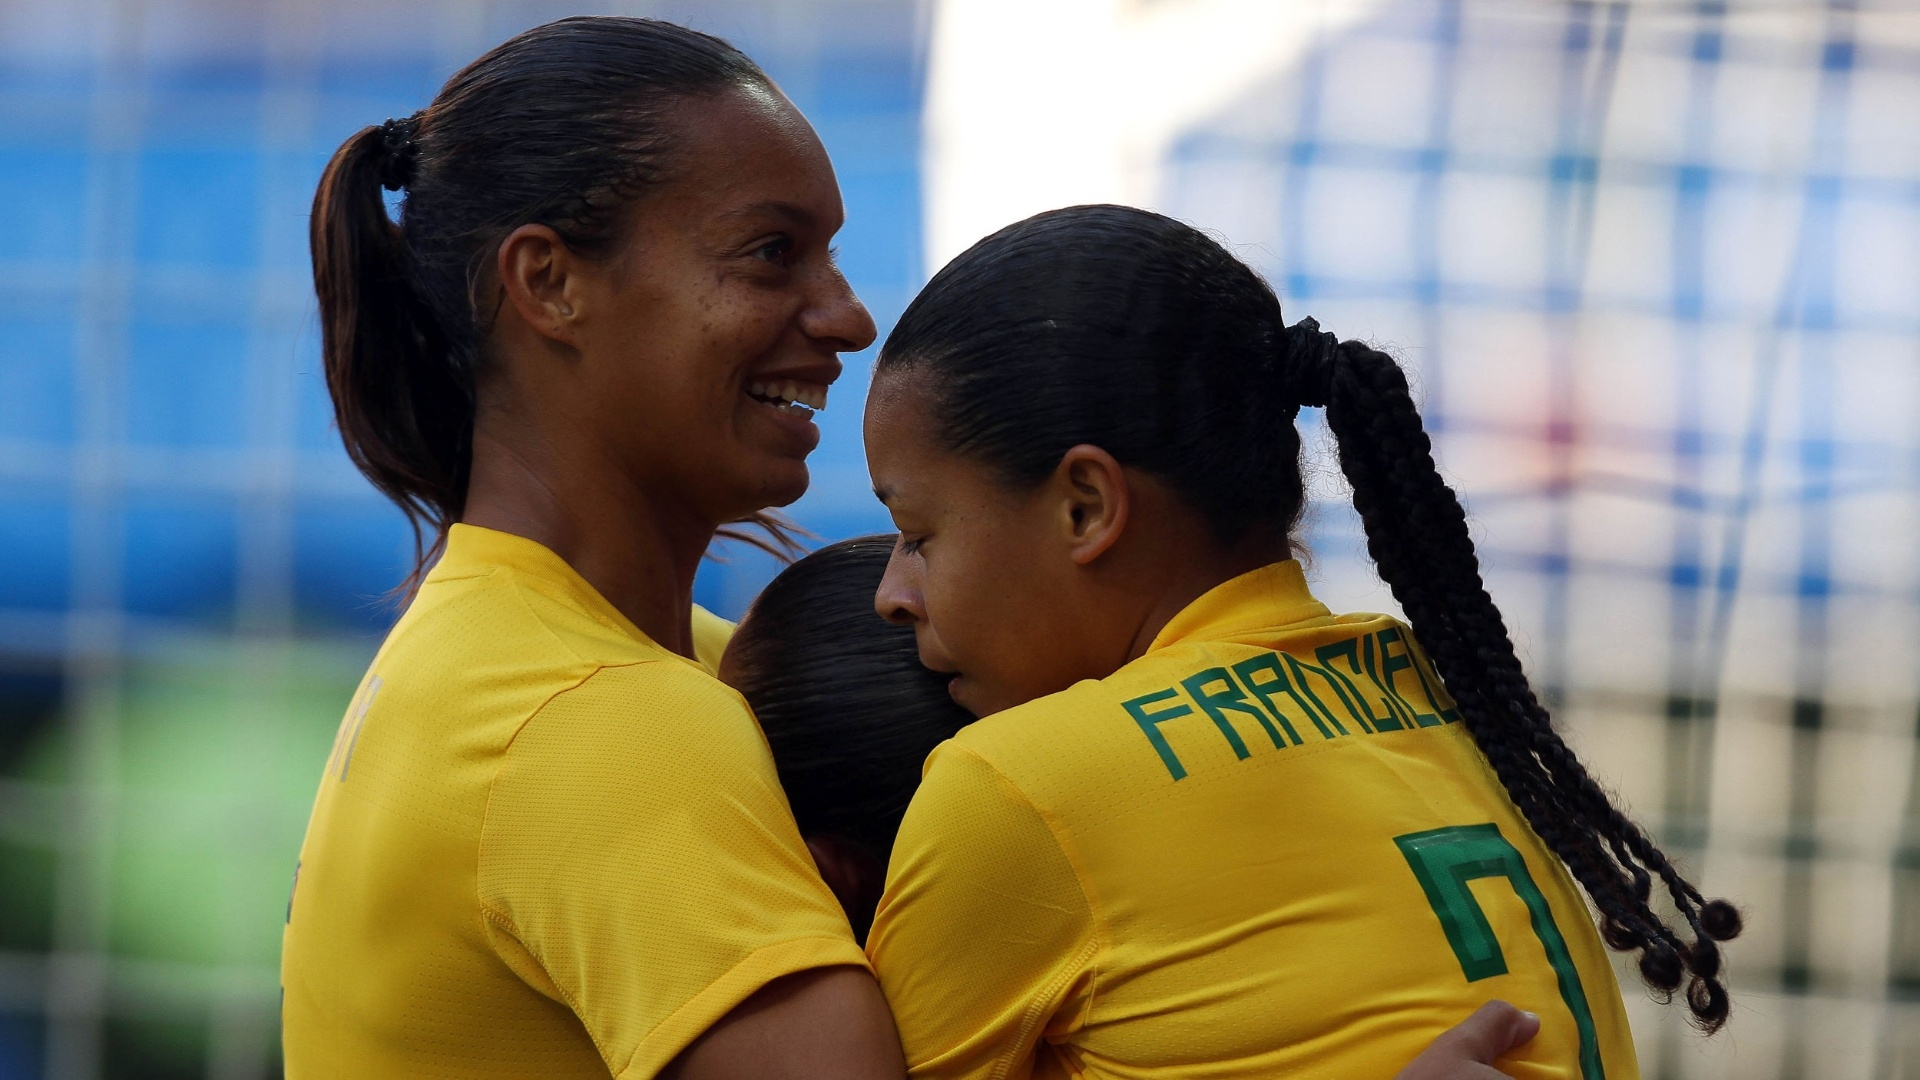 Brasileiras comemoram gol contra o Canad, na final do futebol feminino (27/10/2011)